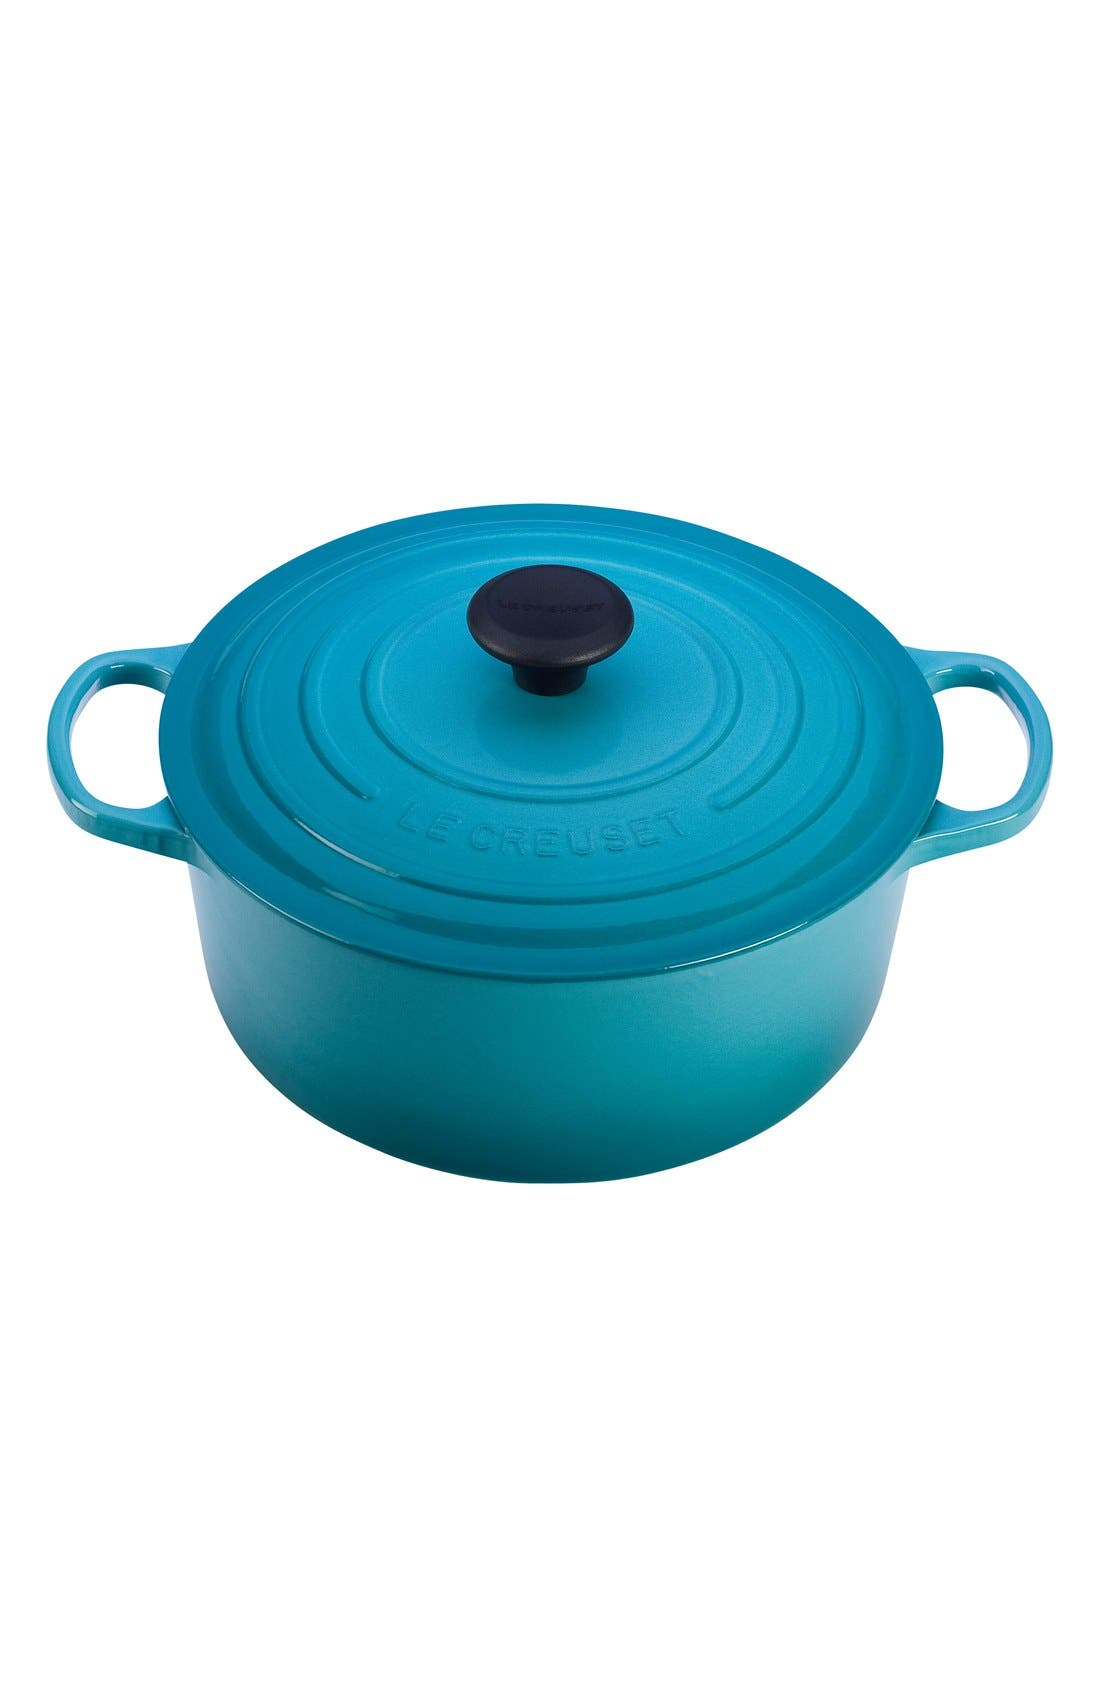 Signature 7 1/4 Quart Round Enamel Cast Iron French/Dutch Oven,                             Main thumbnail 1, color,                             Caribbean